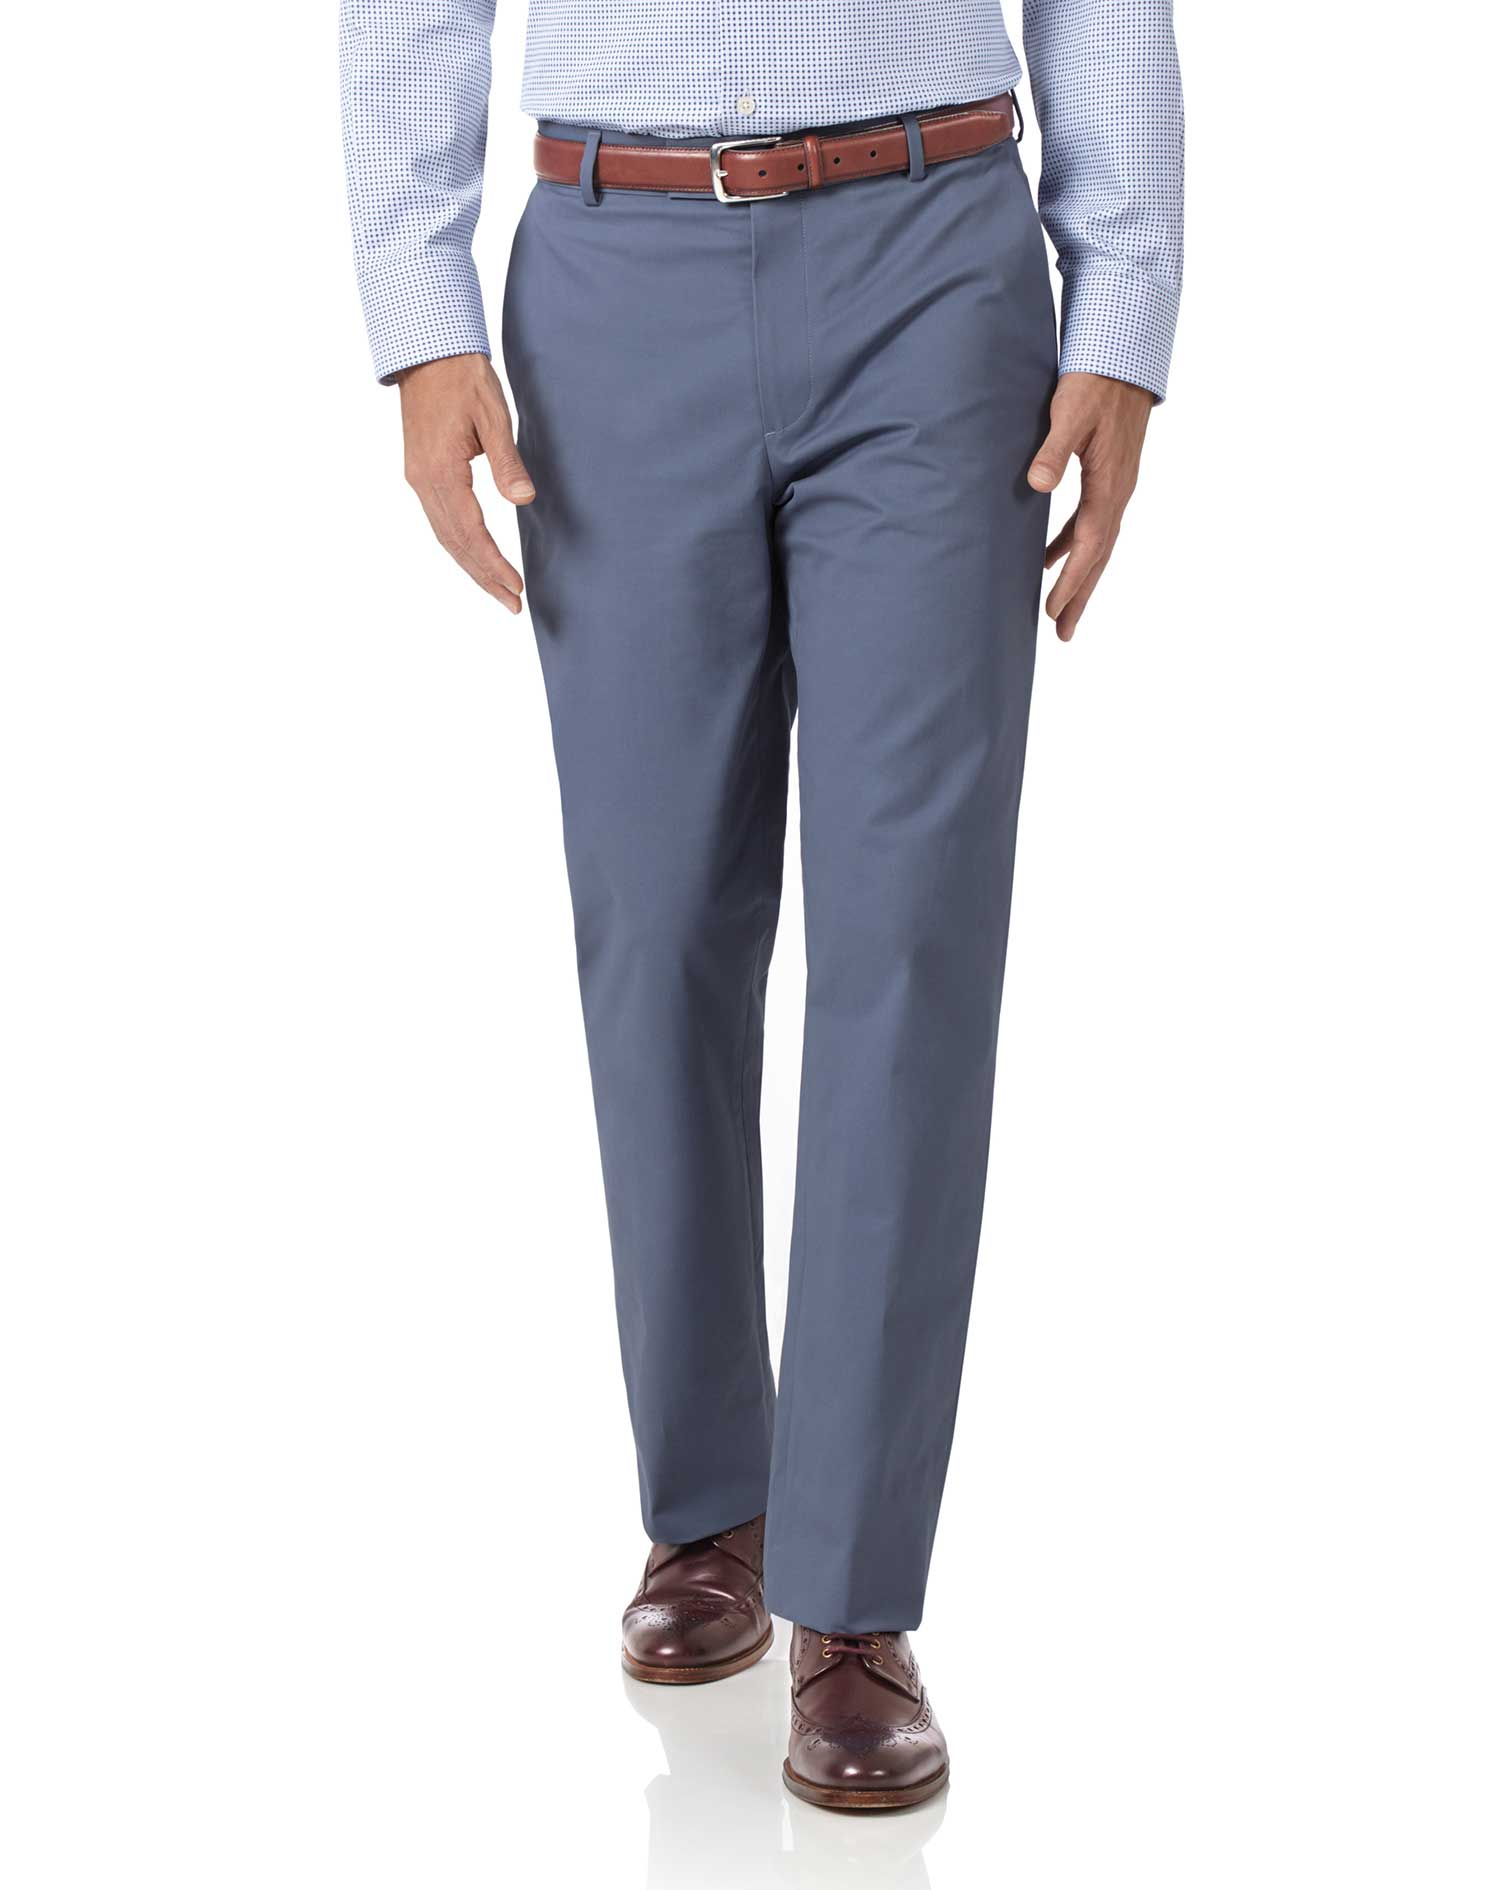 Blue Classic Fit Stretch Cotton Chino Trousers Size W40 L32 by Charles Tyrwhitt